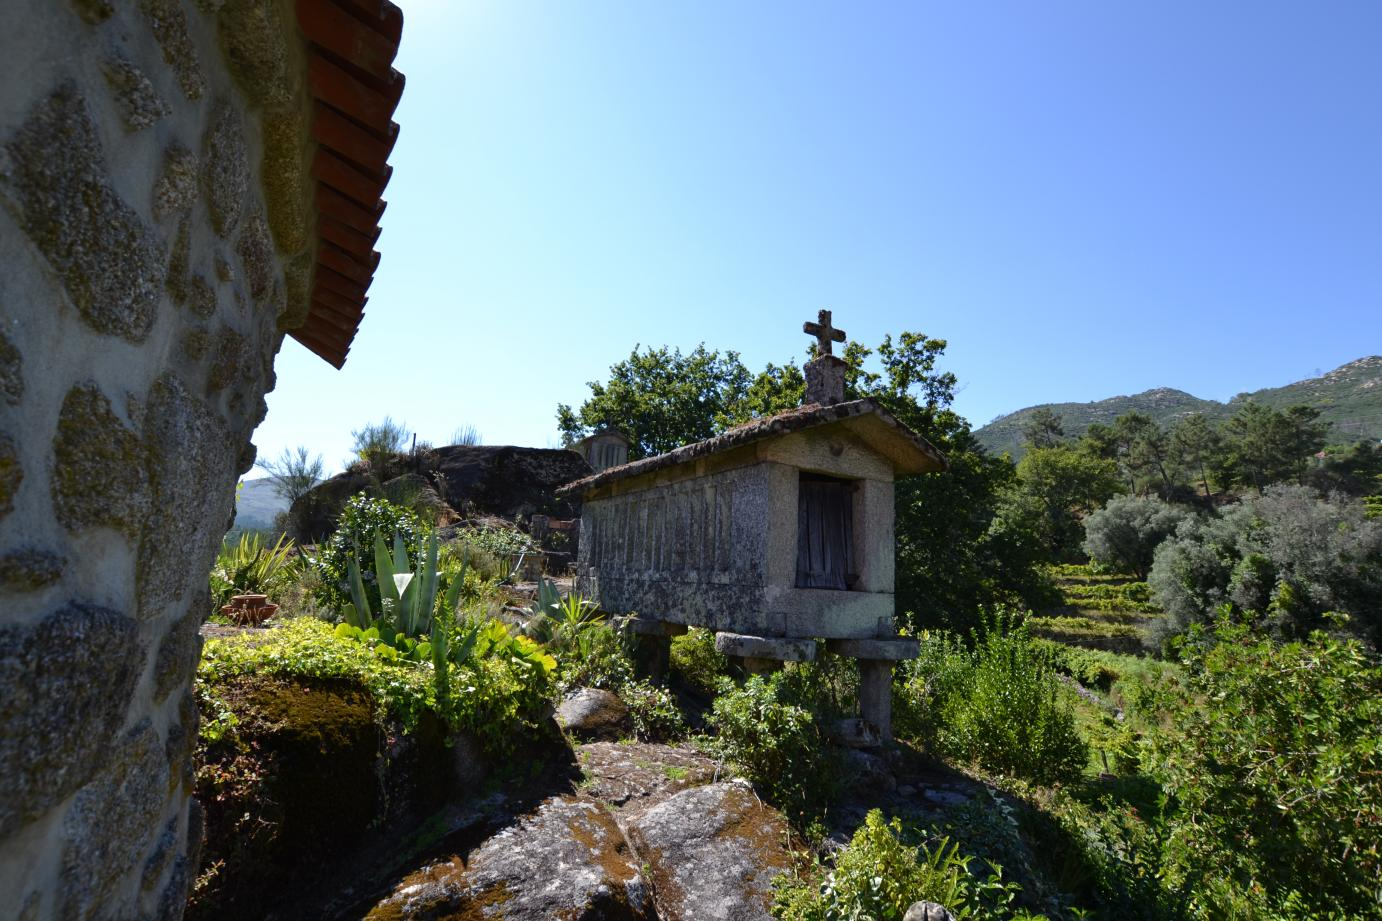 Casa do Souto Grande - Turismo rural no Soajo - PNPG